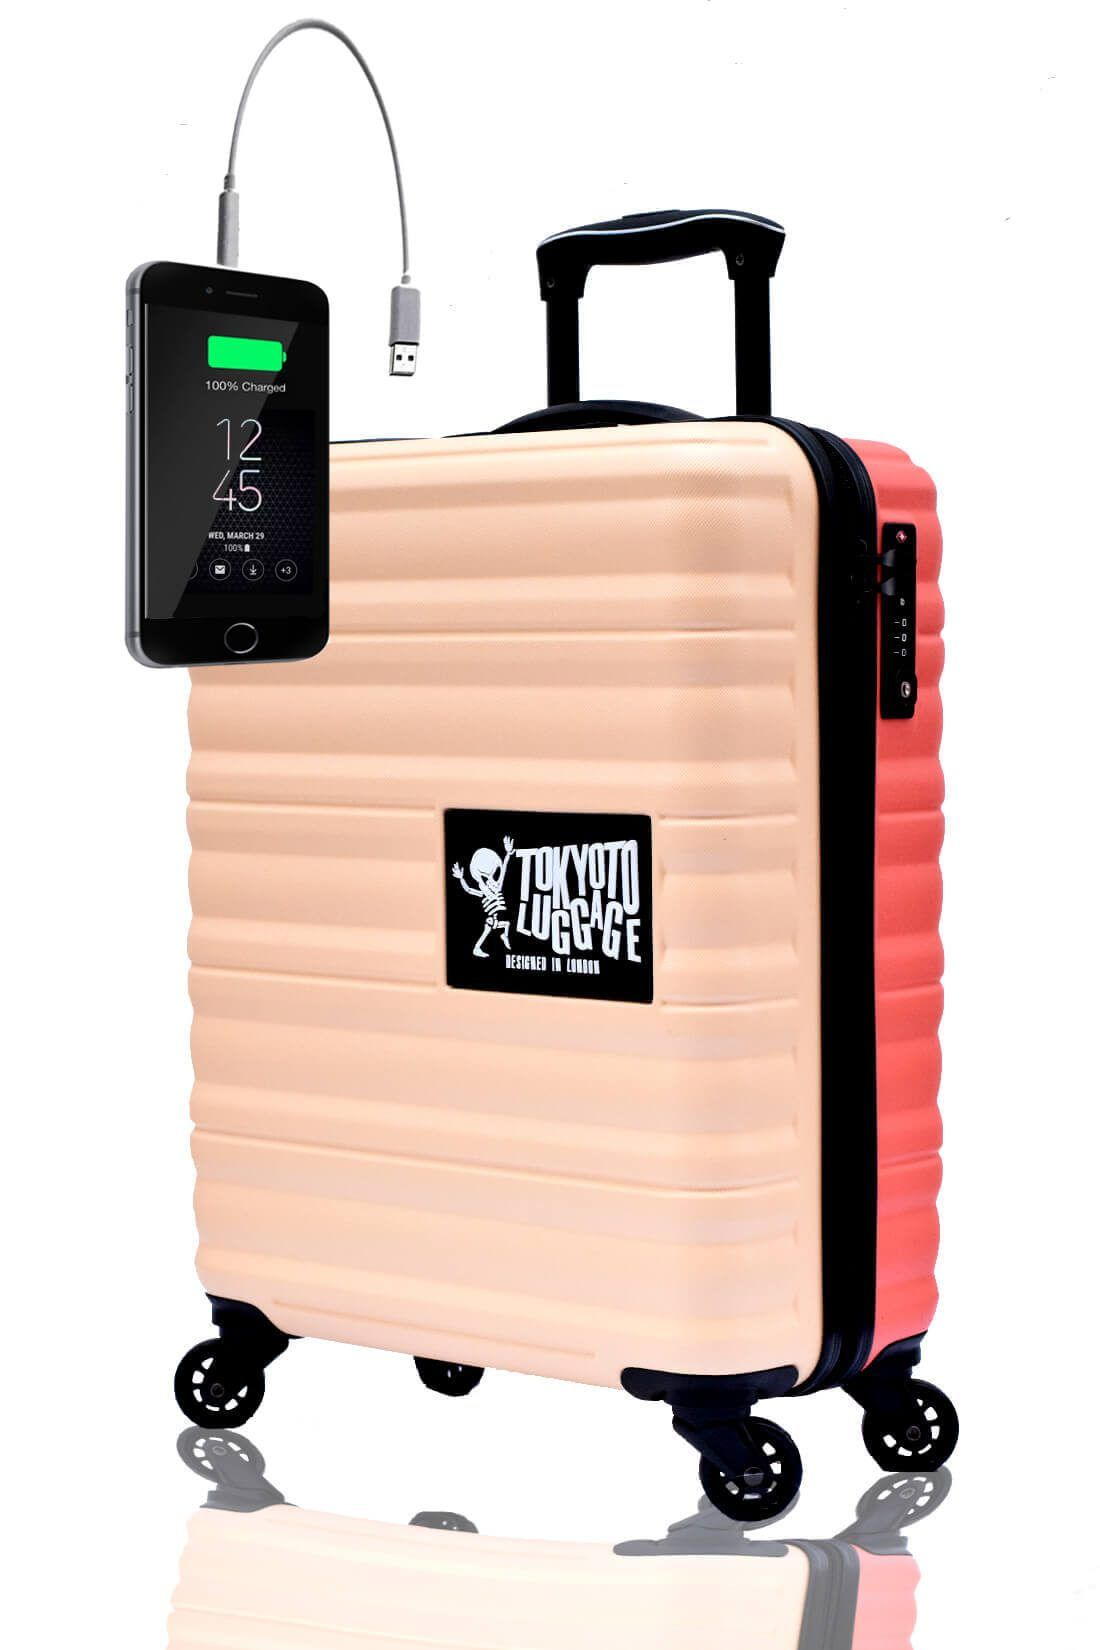 ABS Hand Trolley Cabin Luggage Suitcase Online Powerbank USB Charger TOKYOTO BEIGE CORAL (2)